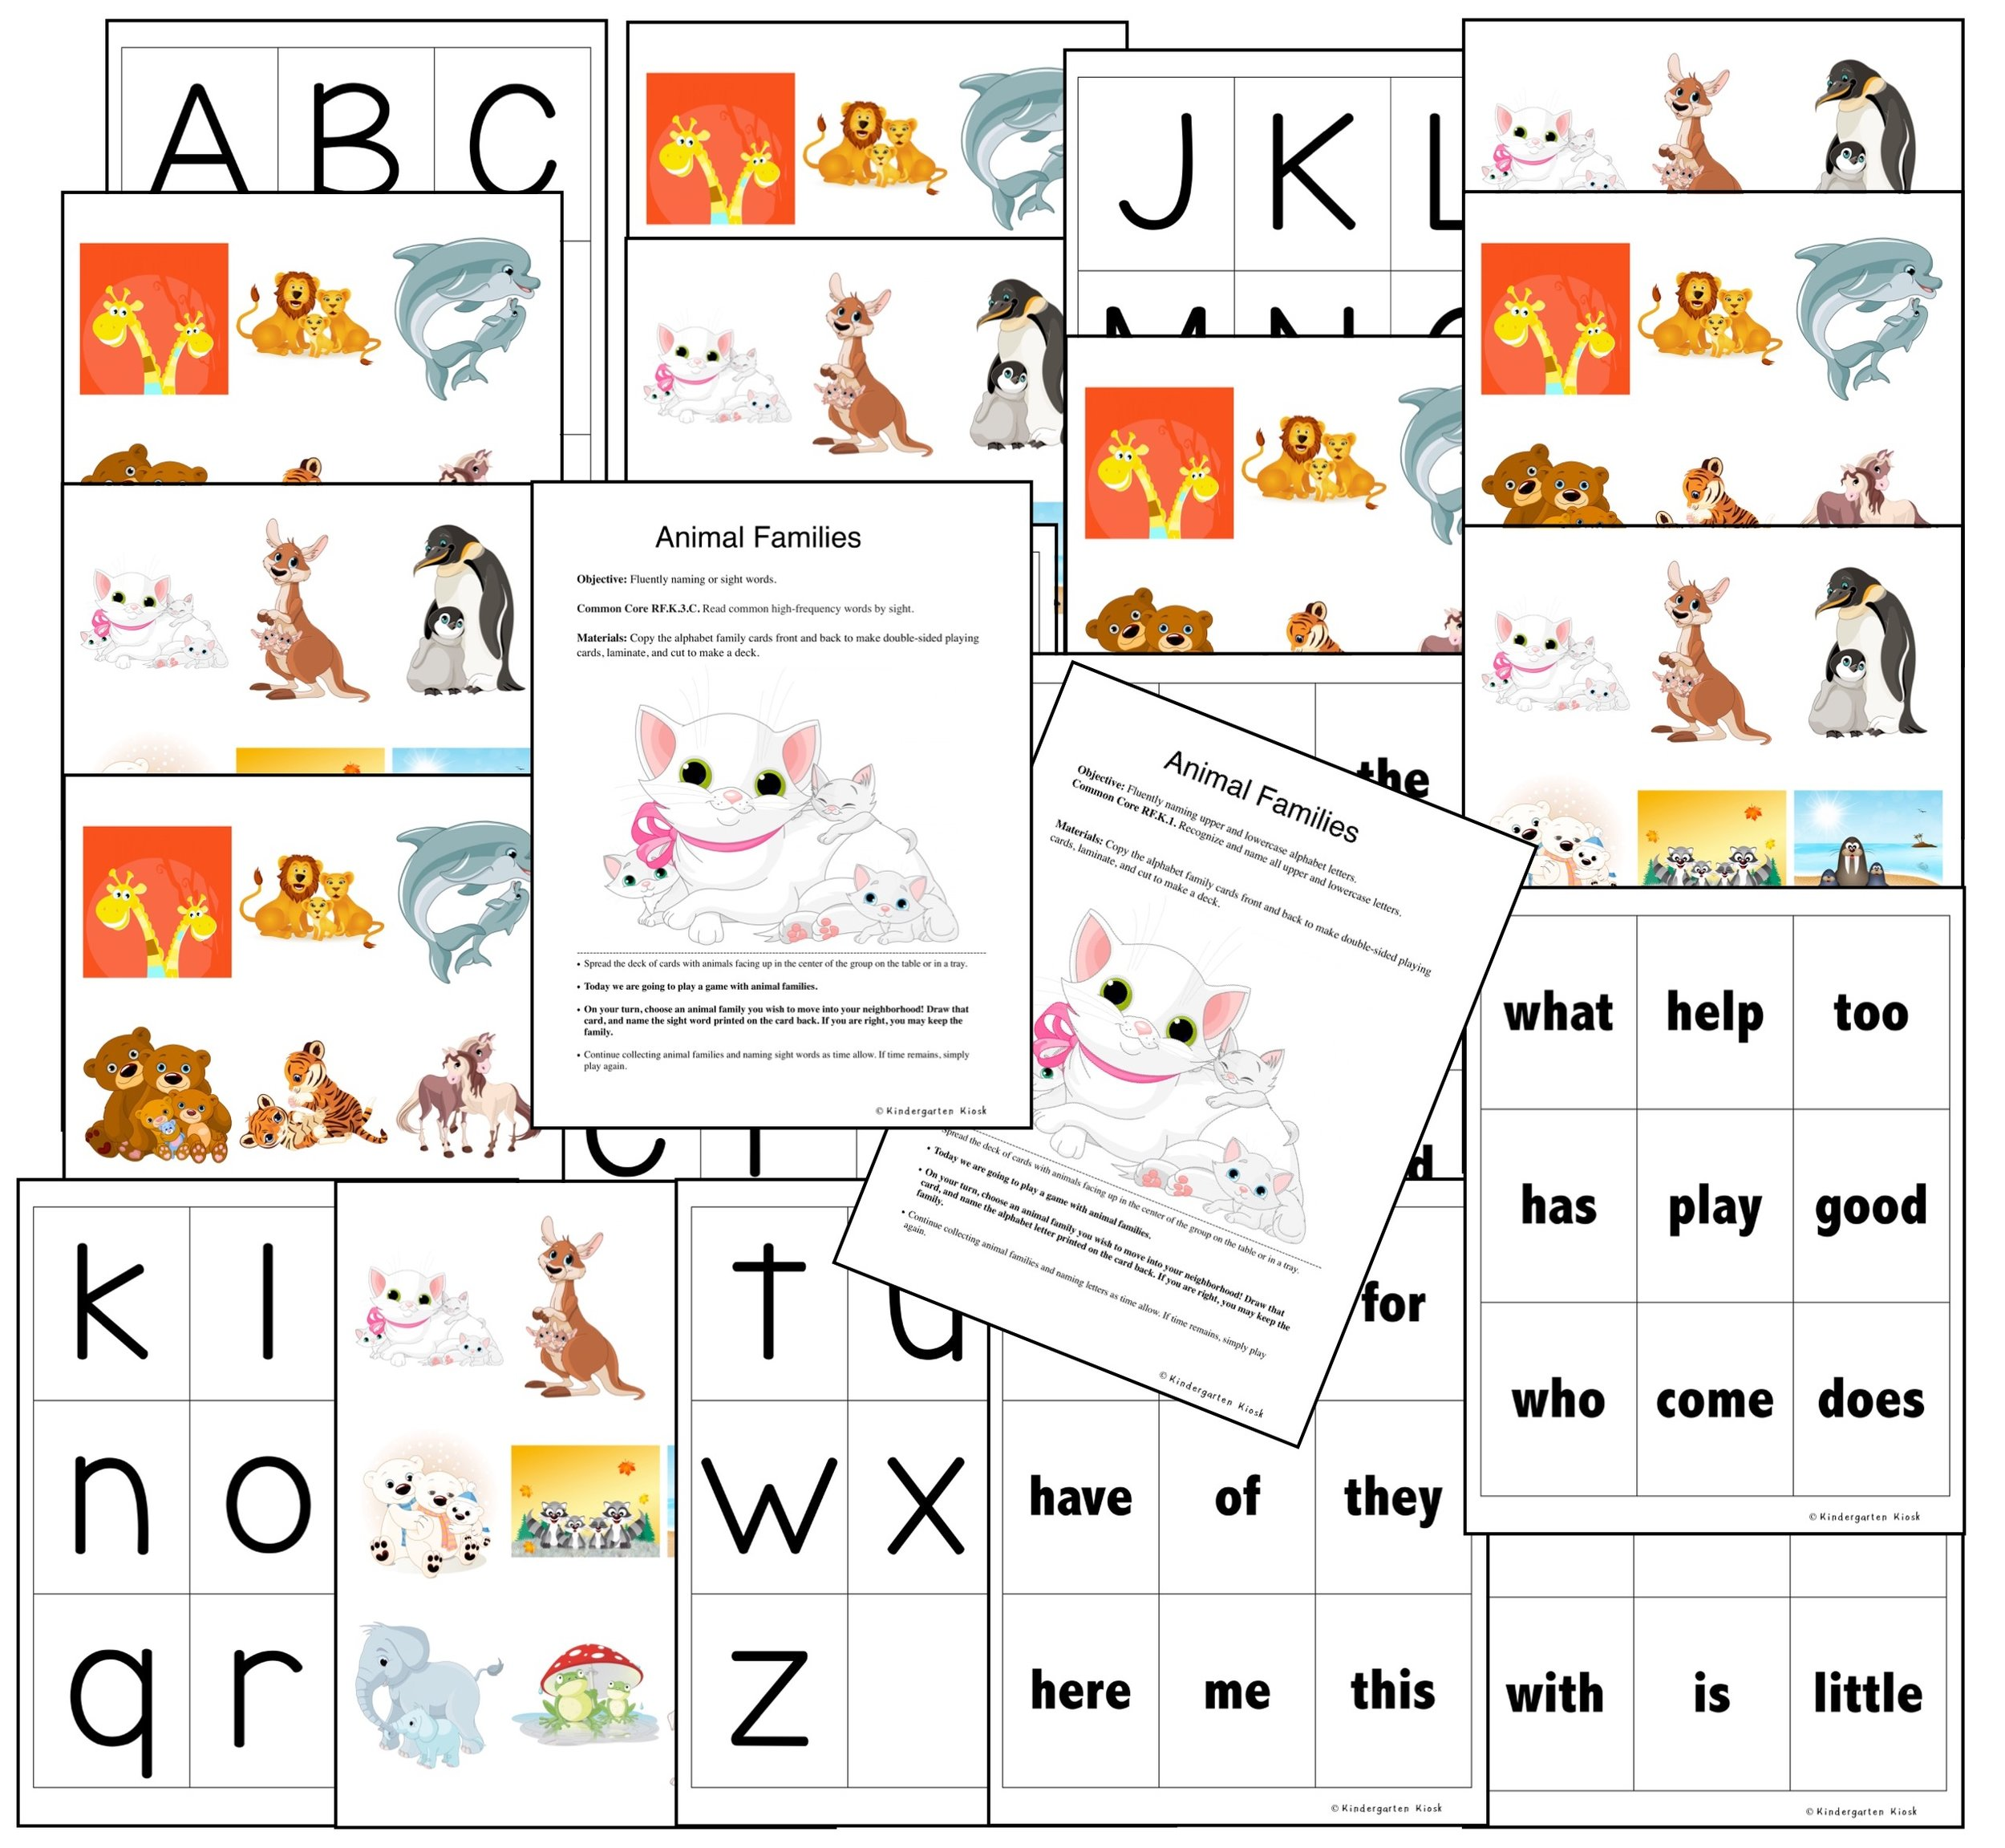 The game Animal Families again deals with the fluency needed to become emergent readers. The games include materials and instruction for letter naming, naming letter sounds, and reading sight words.